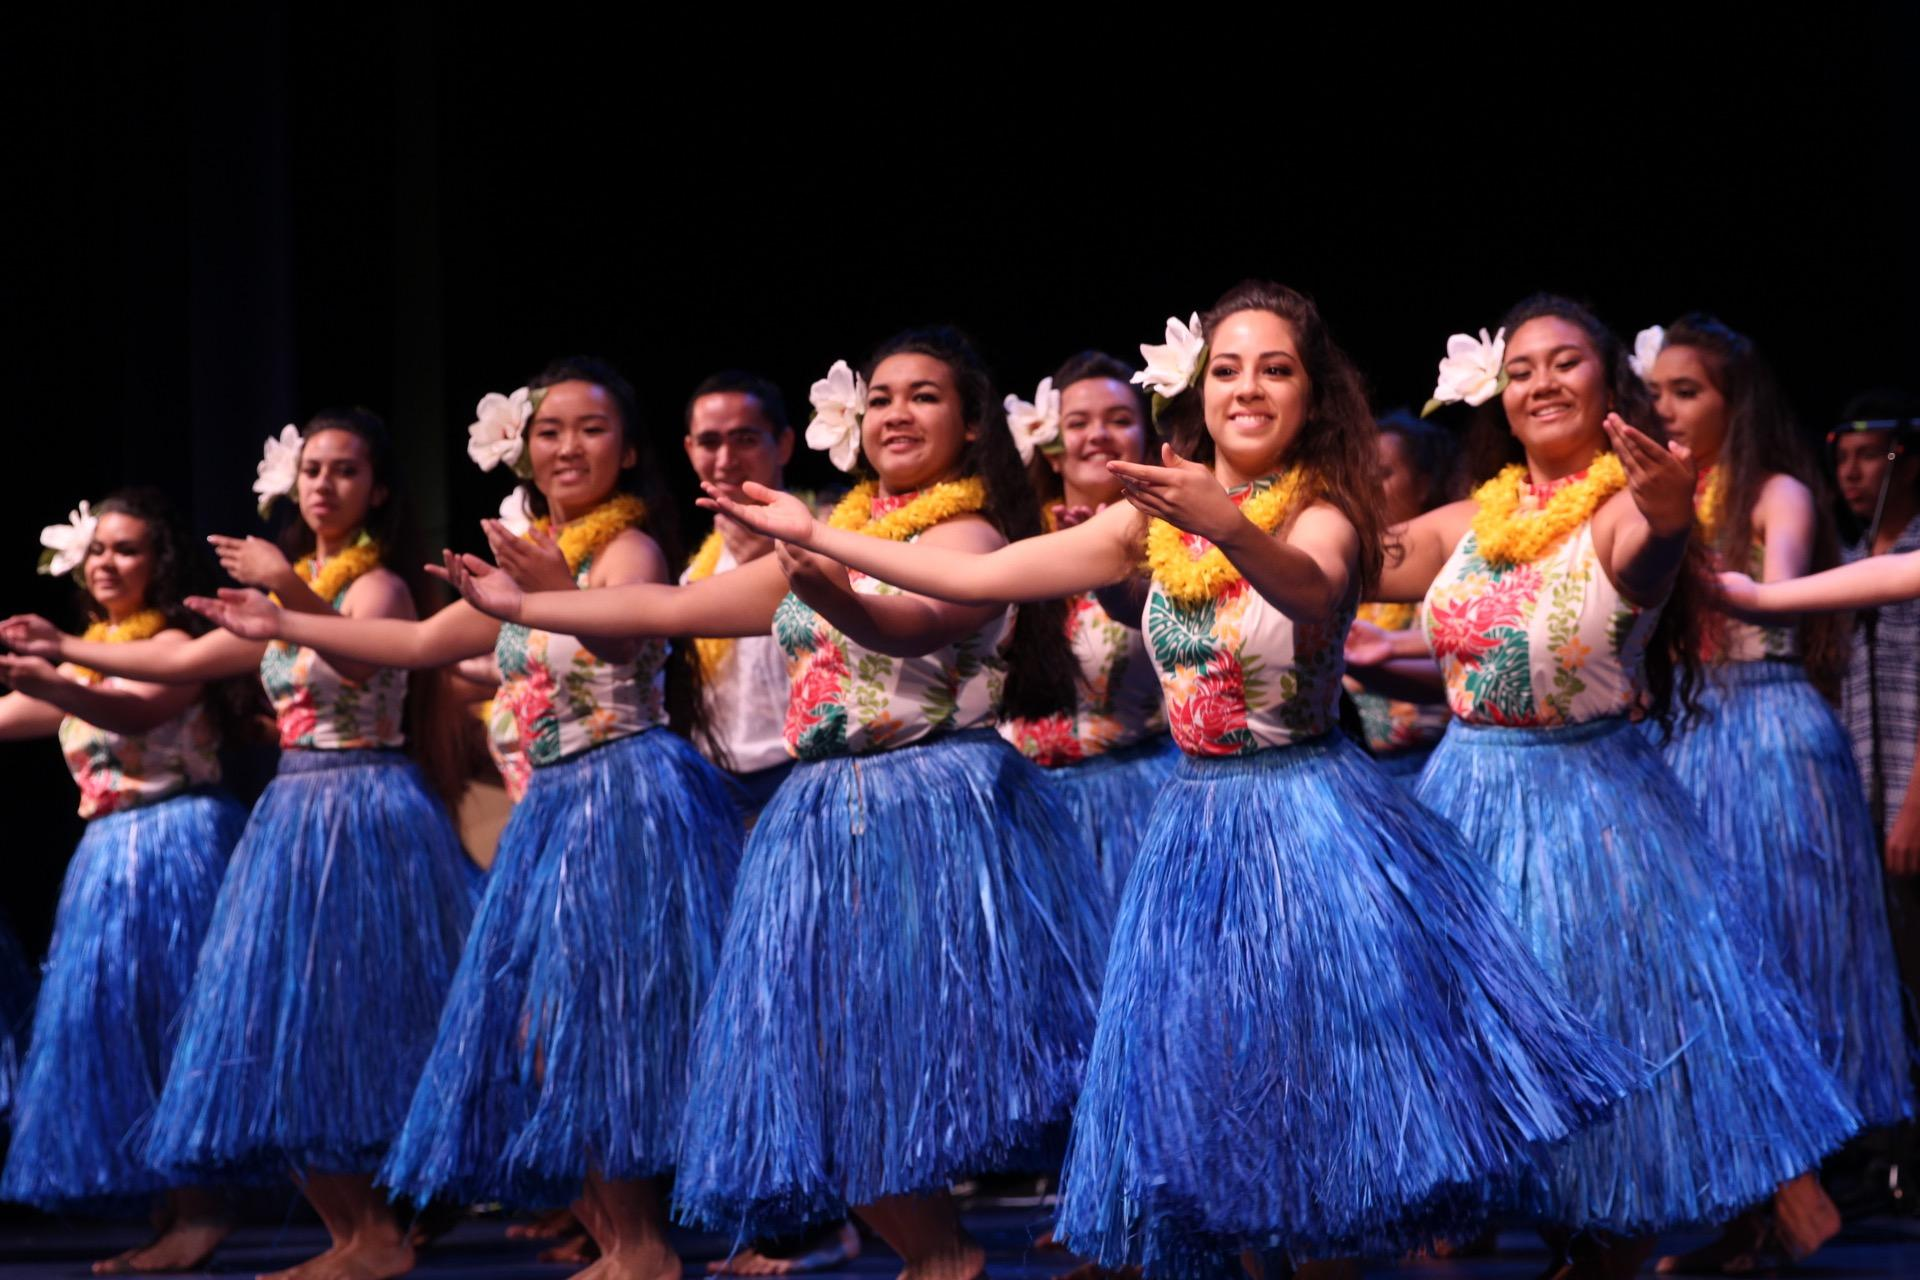 The Hawaiian Ensembleʻs hula group performs to the mele sung by the choir. The Hawaiian Ensemble hosted an open dress rehearsal to make final changes and for the participants' ʻohana to watch.